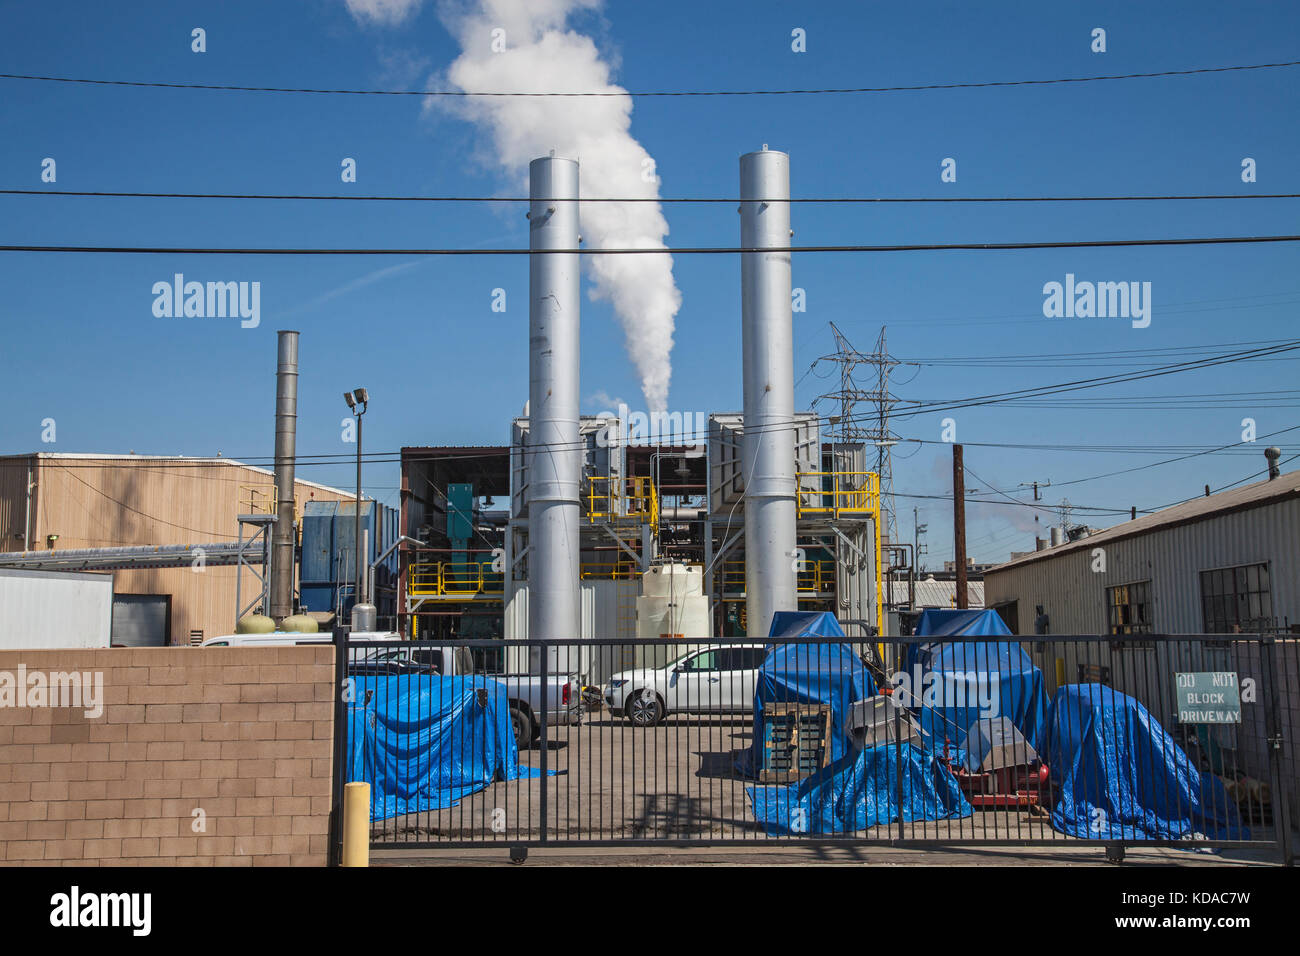 Plant emitting fumes from smokestack in Vernon, Los Angeles, California, USA - Stock Image